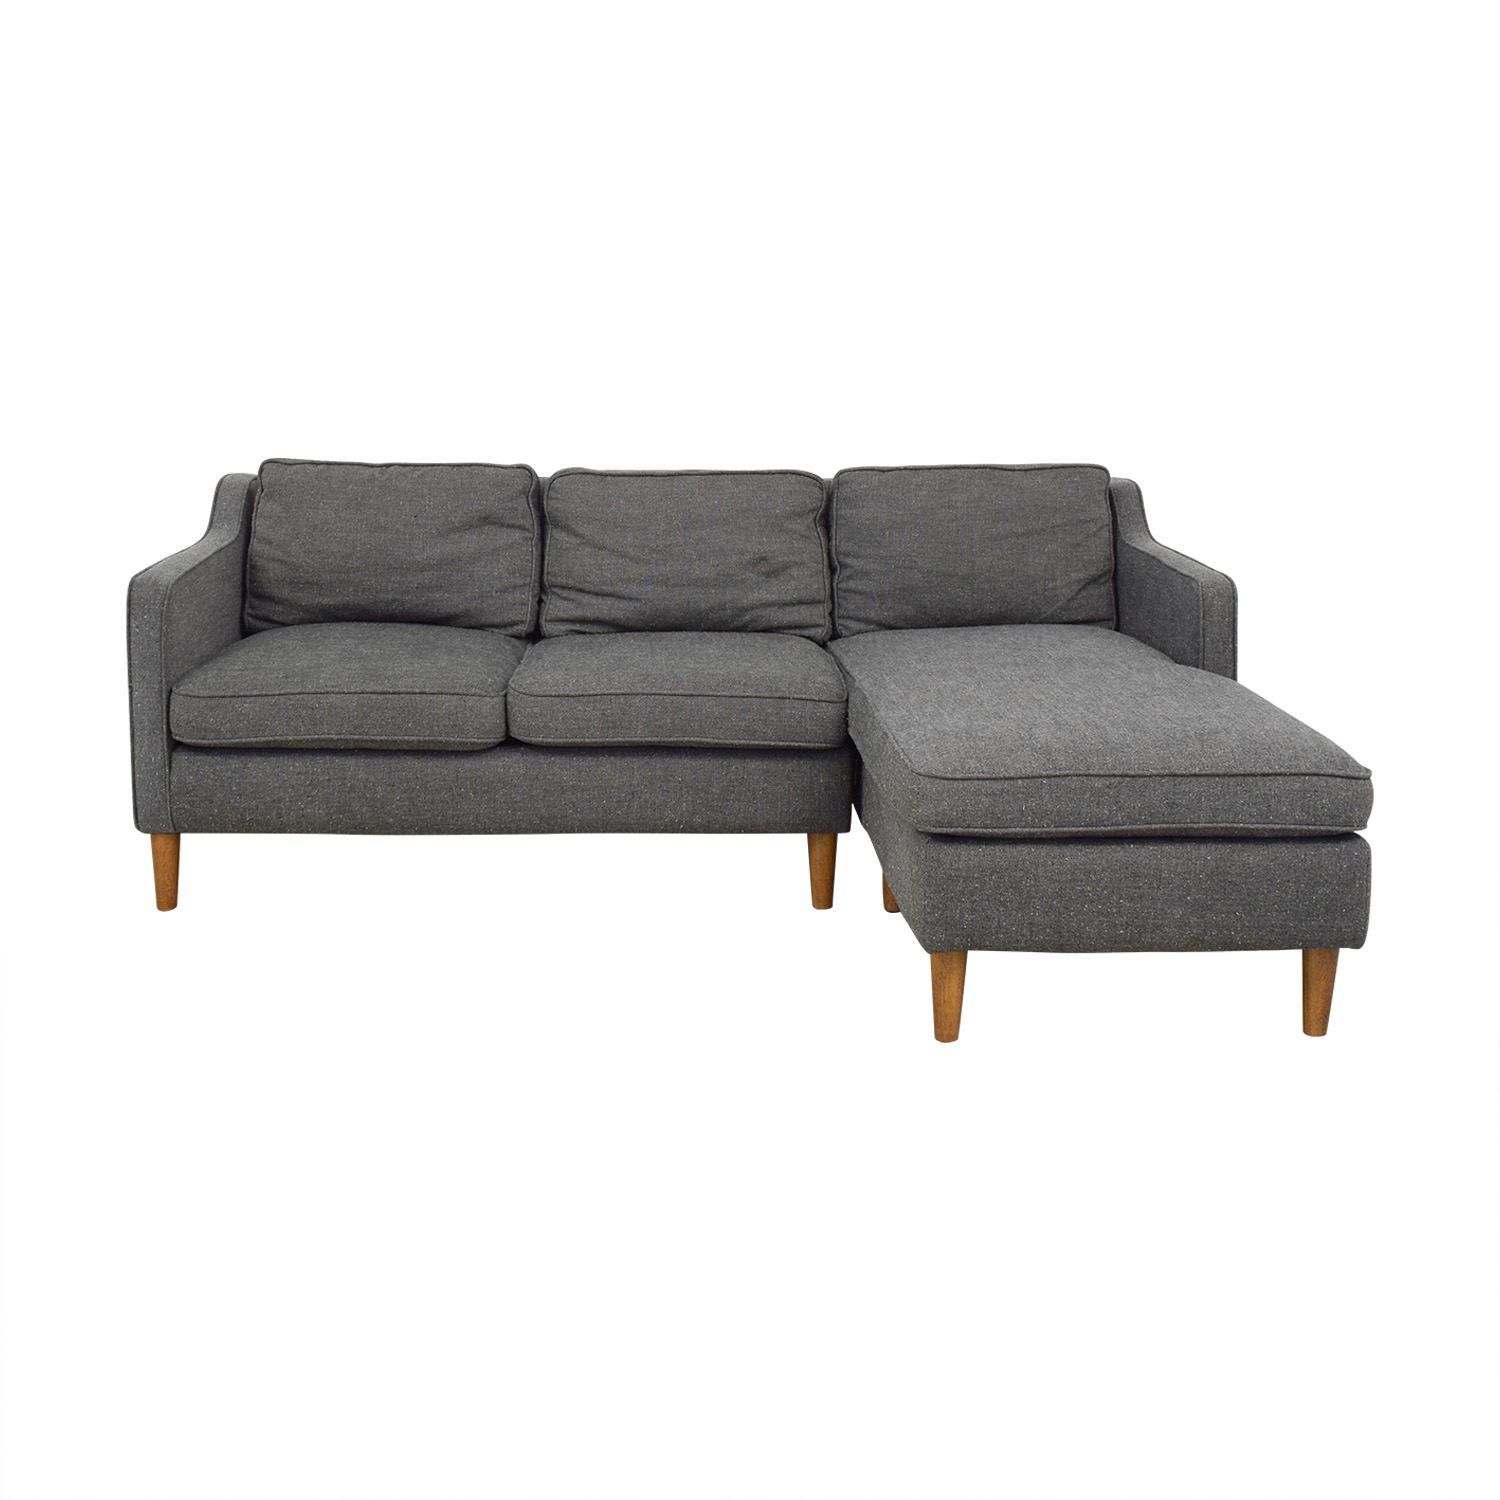 West Elm Hamilton Chaise Sectional / Sofas